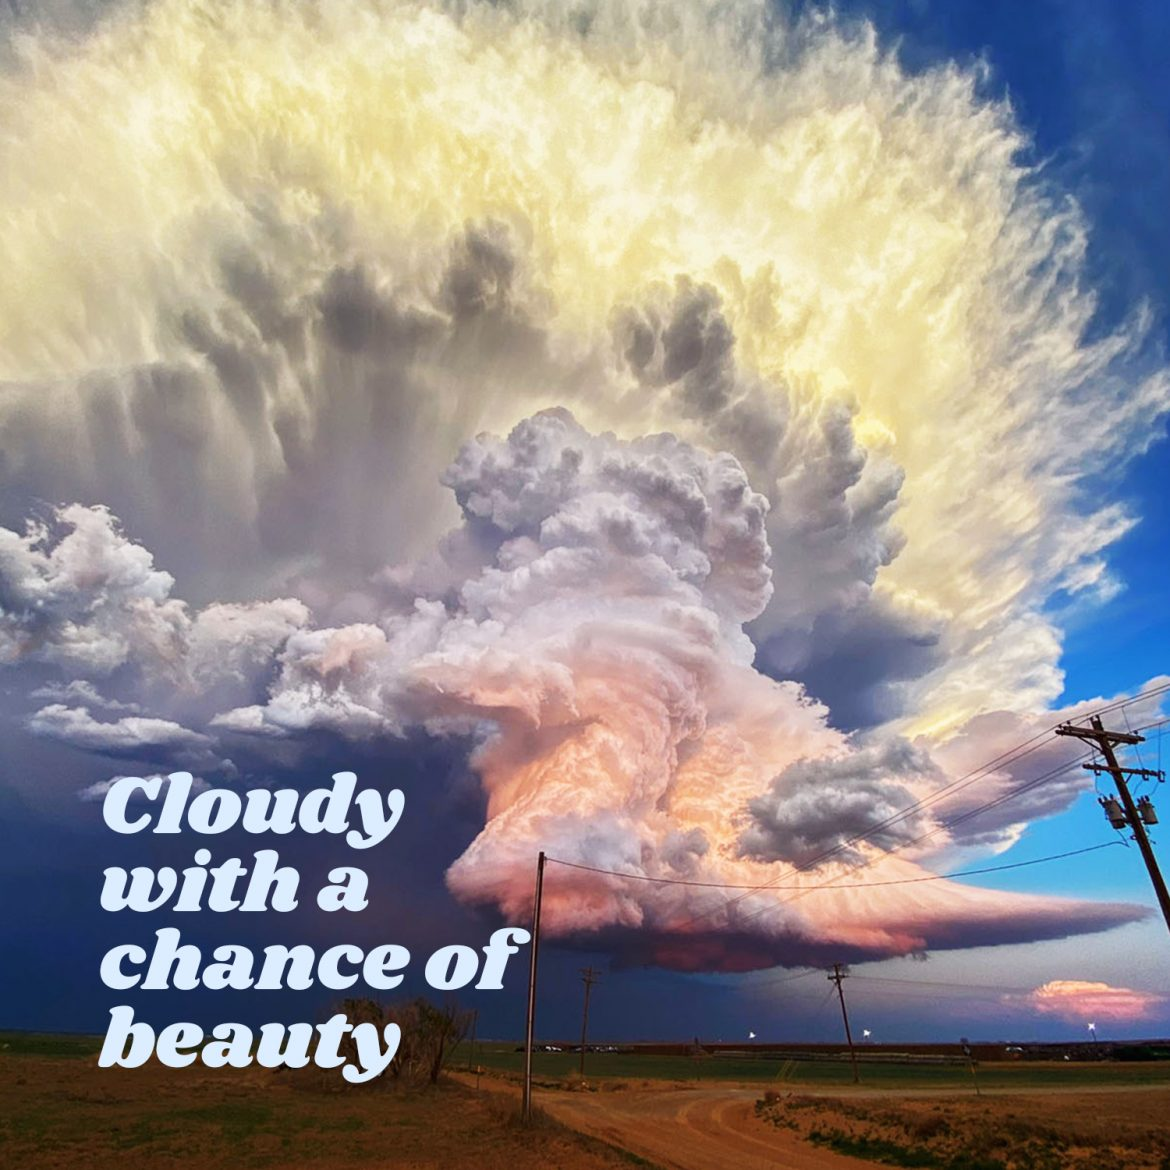 Cloudy with a chance of beauty